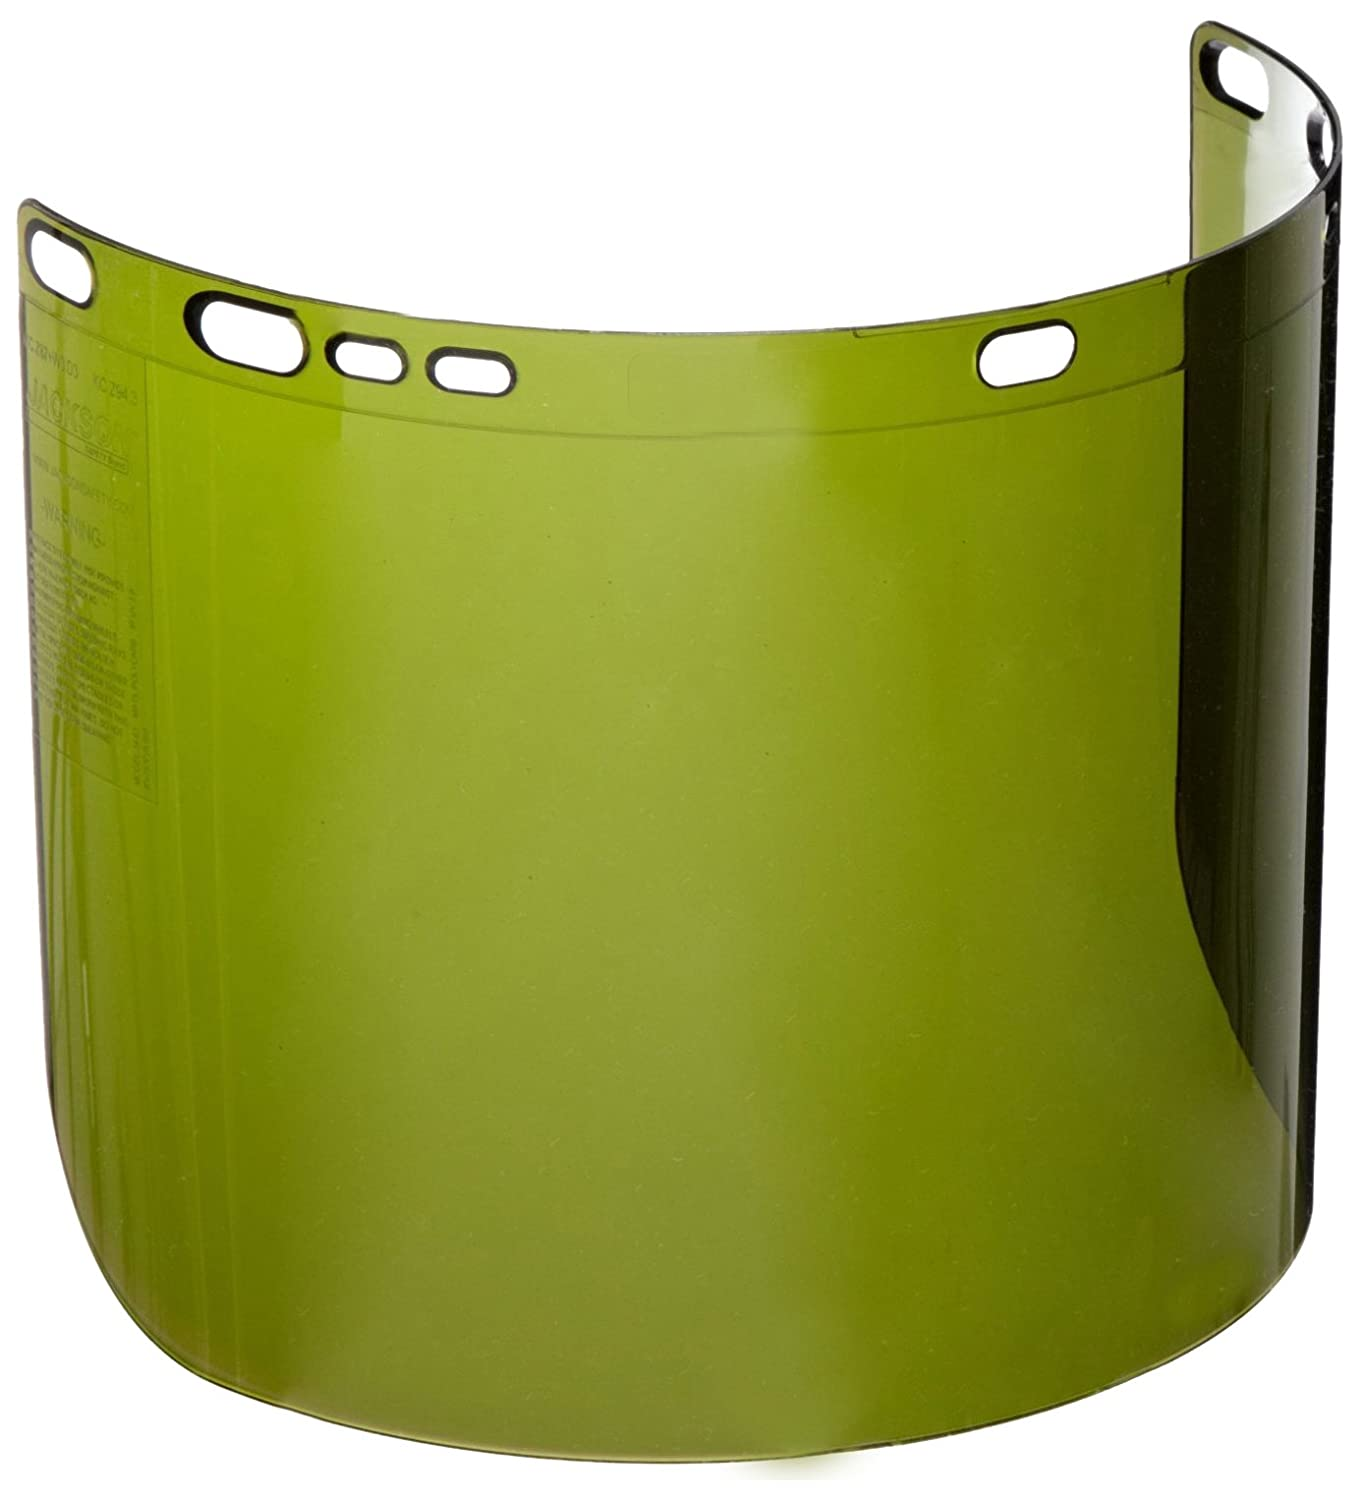 15-1//2 Length x 9 Width x 0.060 Thick Kimberly-Clark Professional B00982YD68 Dark Green 15-1//2 Length x 9 Width x 0.060 Thick Jackson Safety F40 Propionate Unbound Face Shield Case of 12